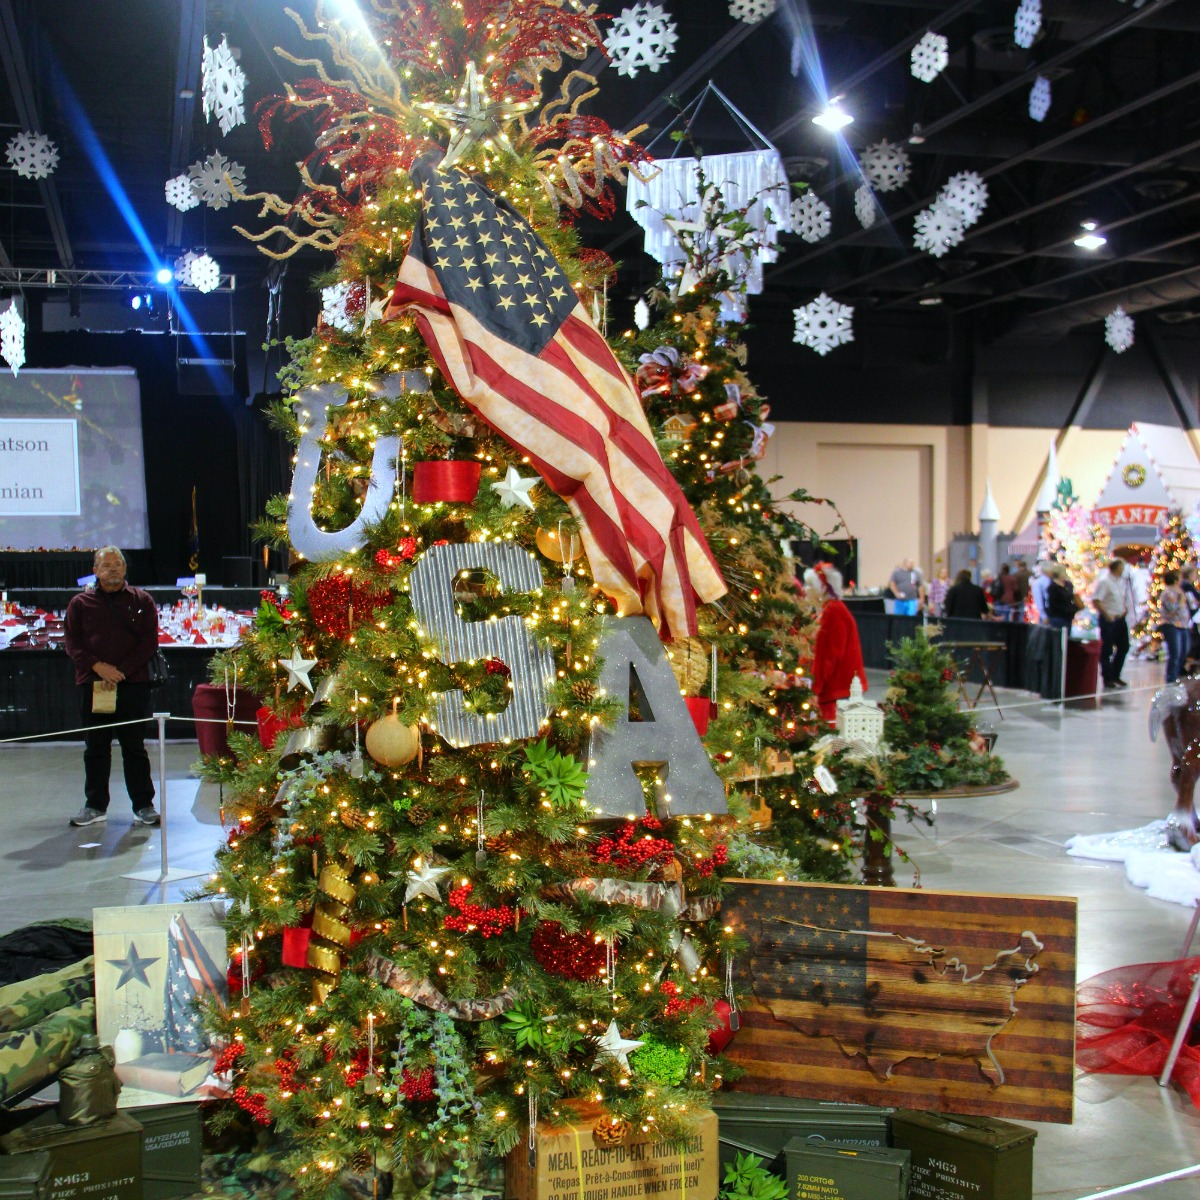 Jubilee of Trees 2015, St. George, Utah, November 2015 | photo courtesy of Intermountain Healthcare Foundation, St. George News